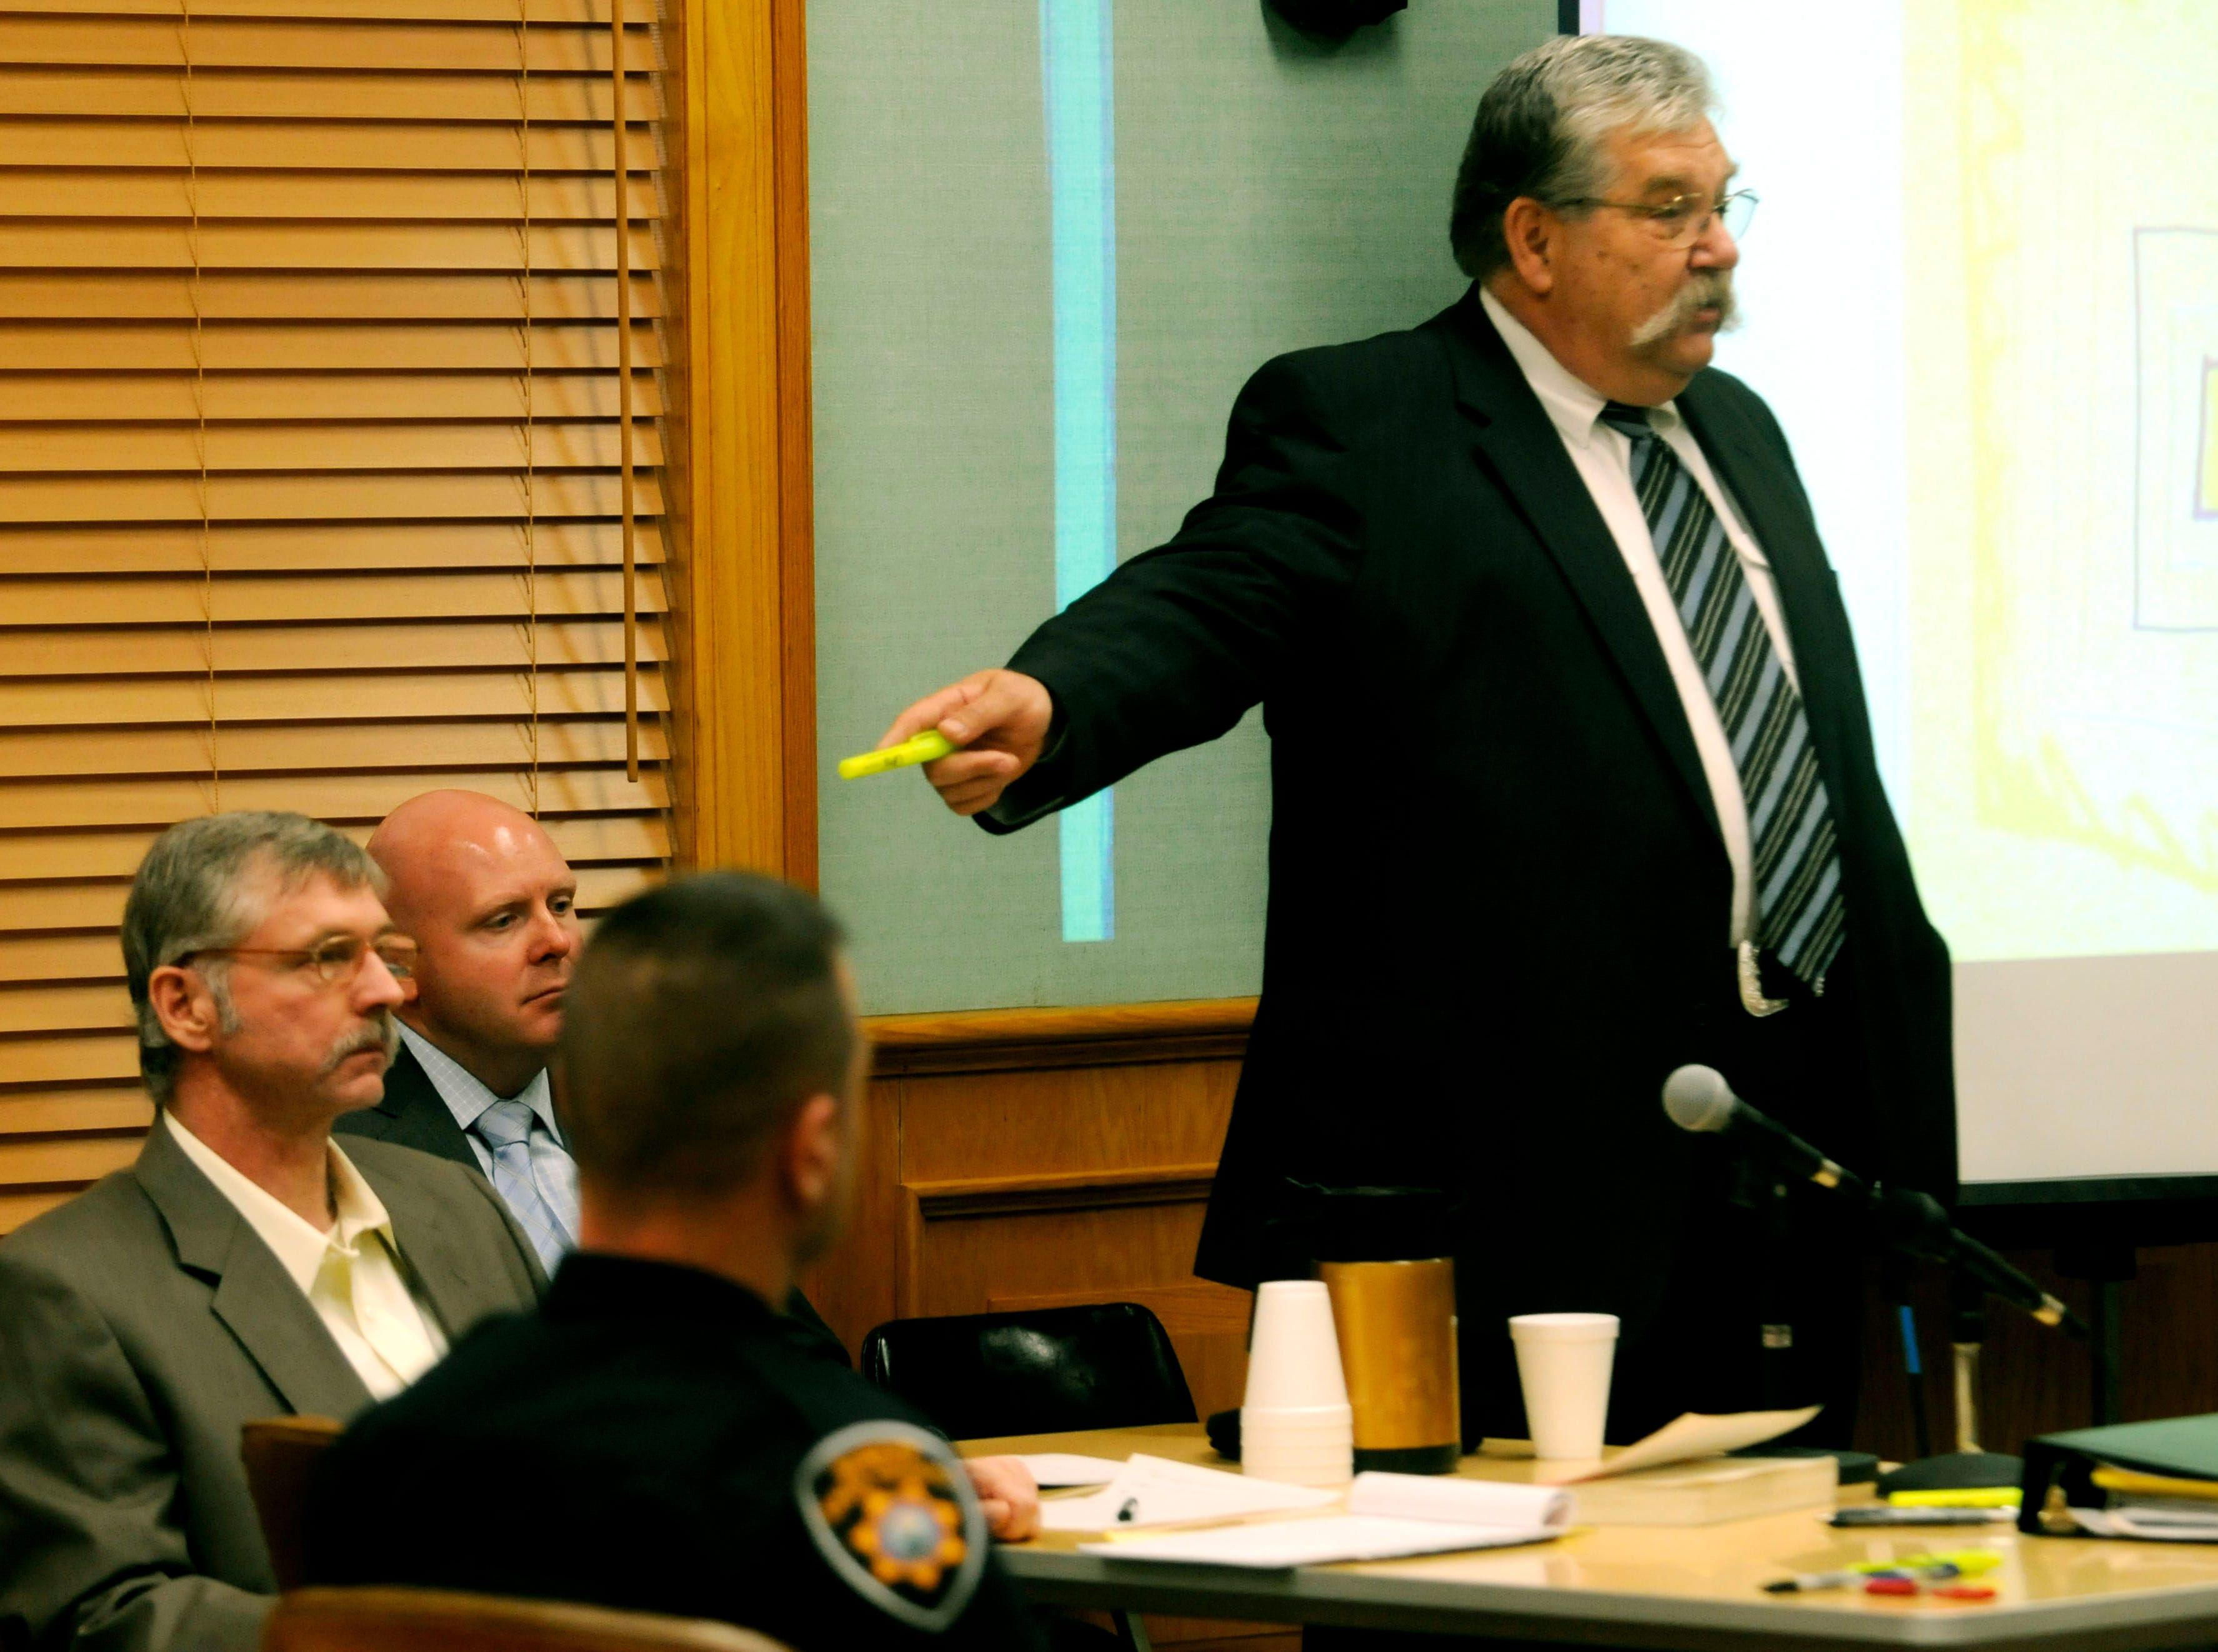 Rocky Houston's defense attorney Randy Rogers, right, points to Houston during his opening statement telling the jury he was a honest hardworking family man with a top security clearance before this incident. Houston is accused of ambushing Roane County Sheriff's Office Deputy William Birl Jones, 53, and ride-along Gerald Michael Brown, 44, in May 2006, killing them both. Houston, 45, contends he acted in self-defense and for years has been the target of a corrupt Roane County judicial system.  Friday, December 5, 2008